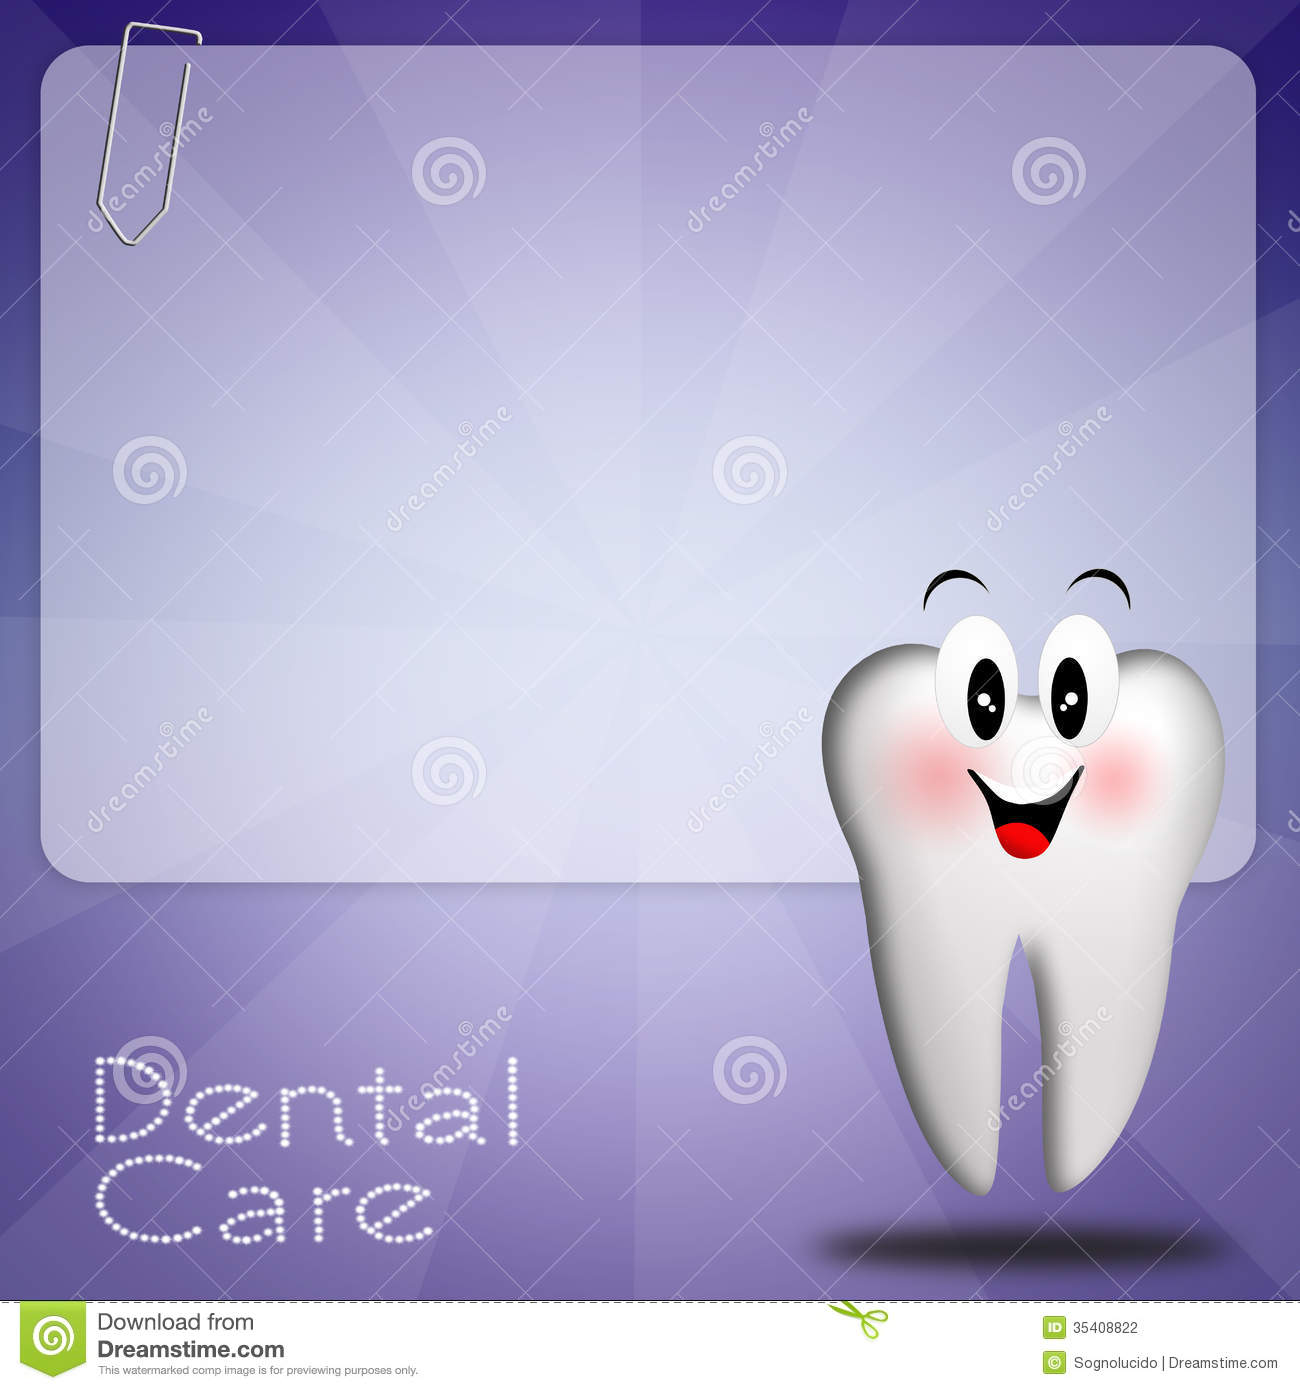 dental-care-illustration-background-tooth-35408822.jpg